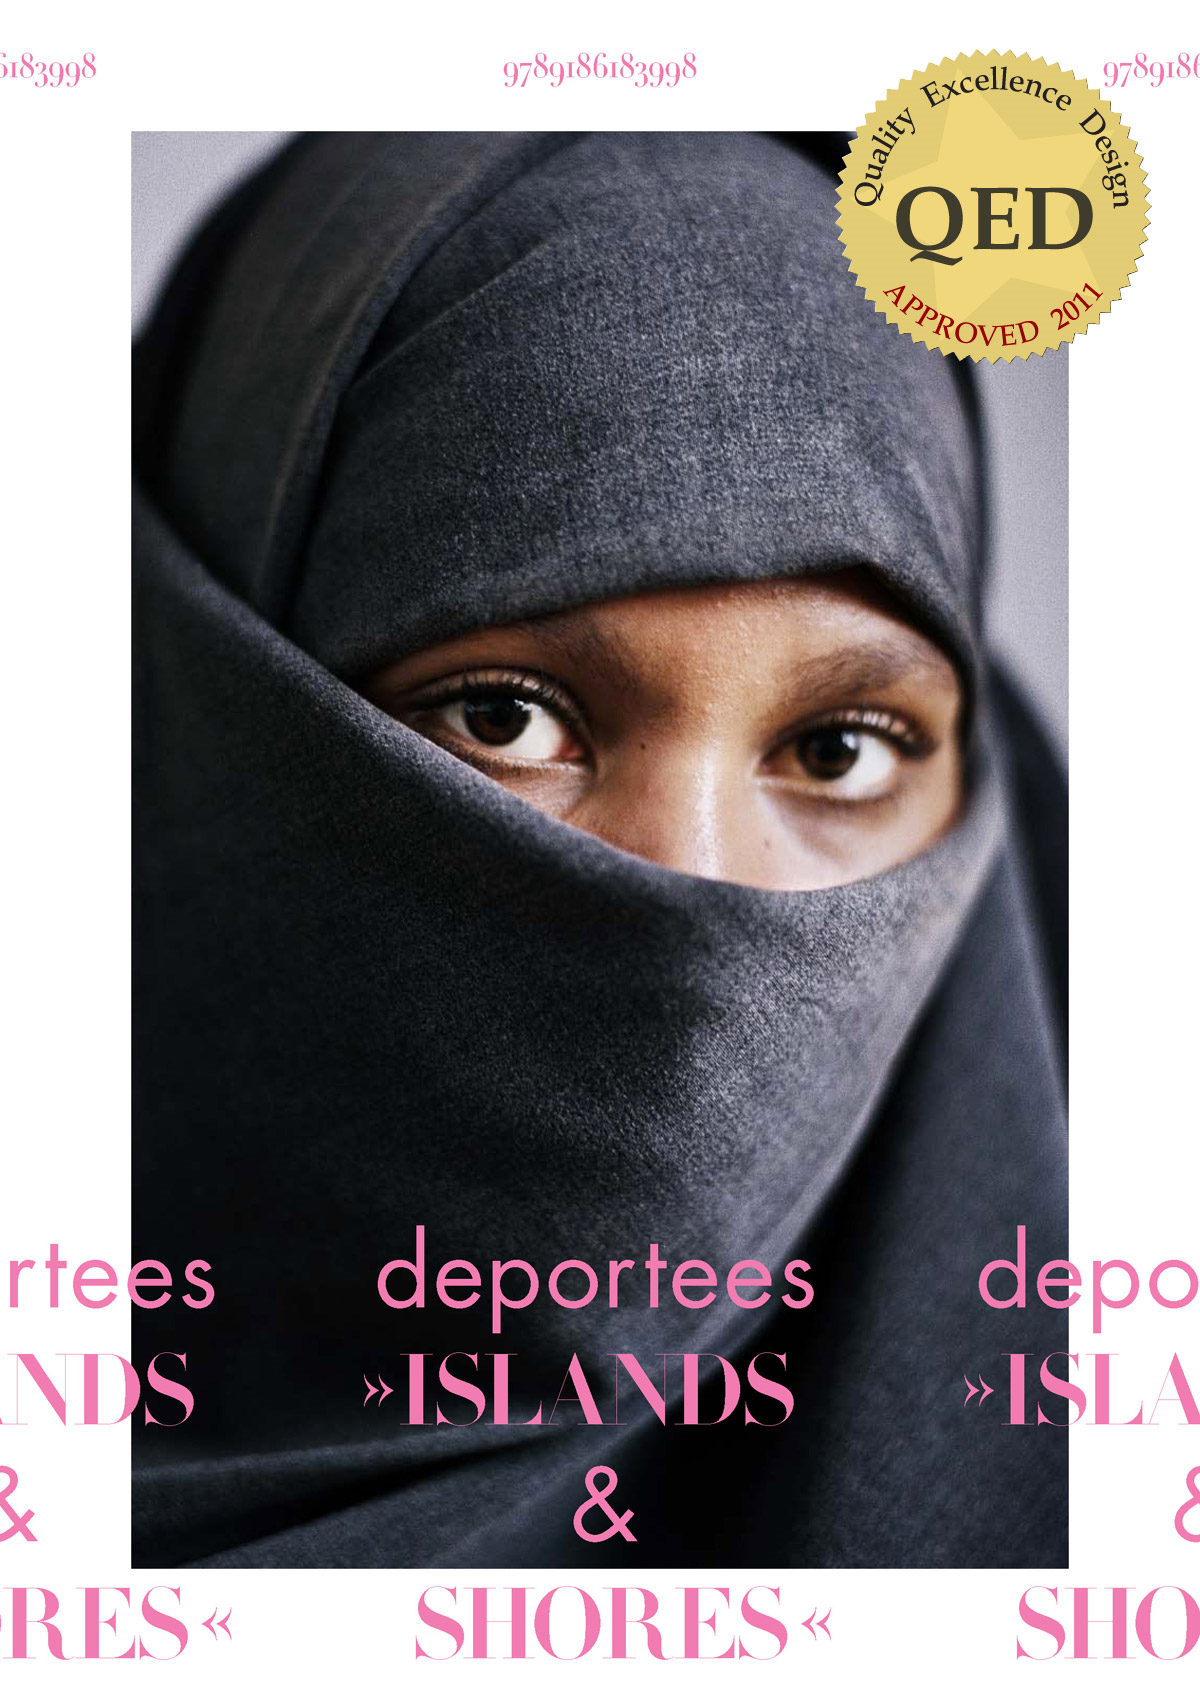 Islands & Shores By: Deportees The